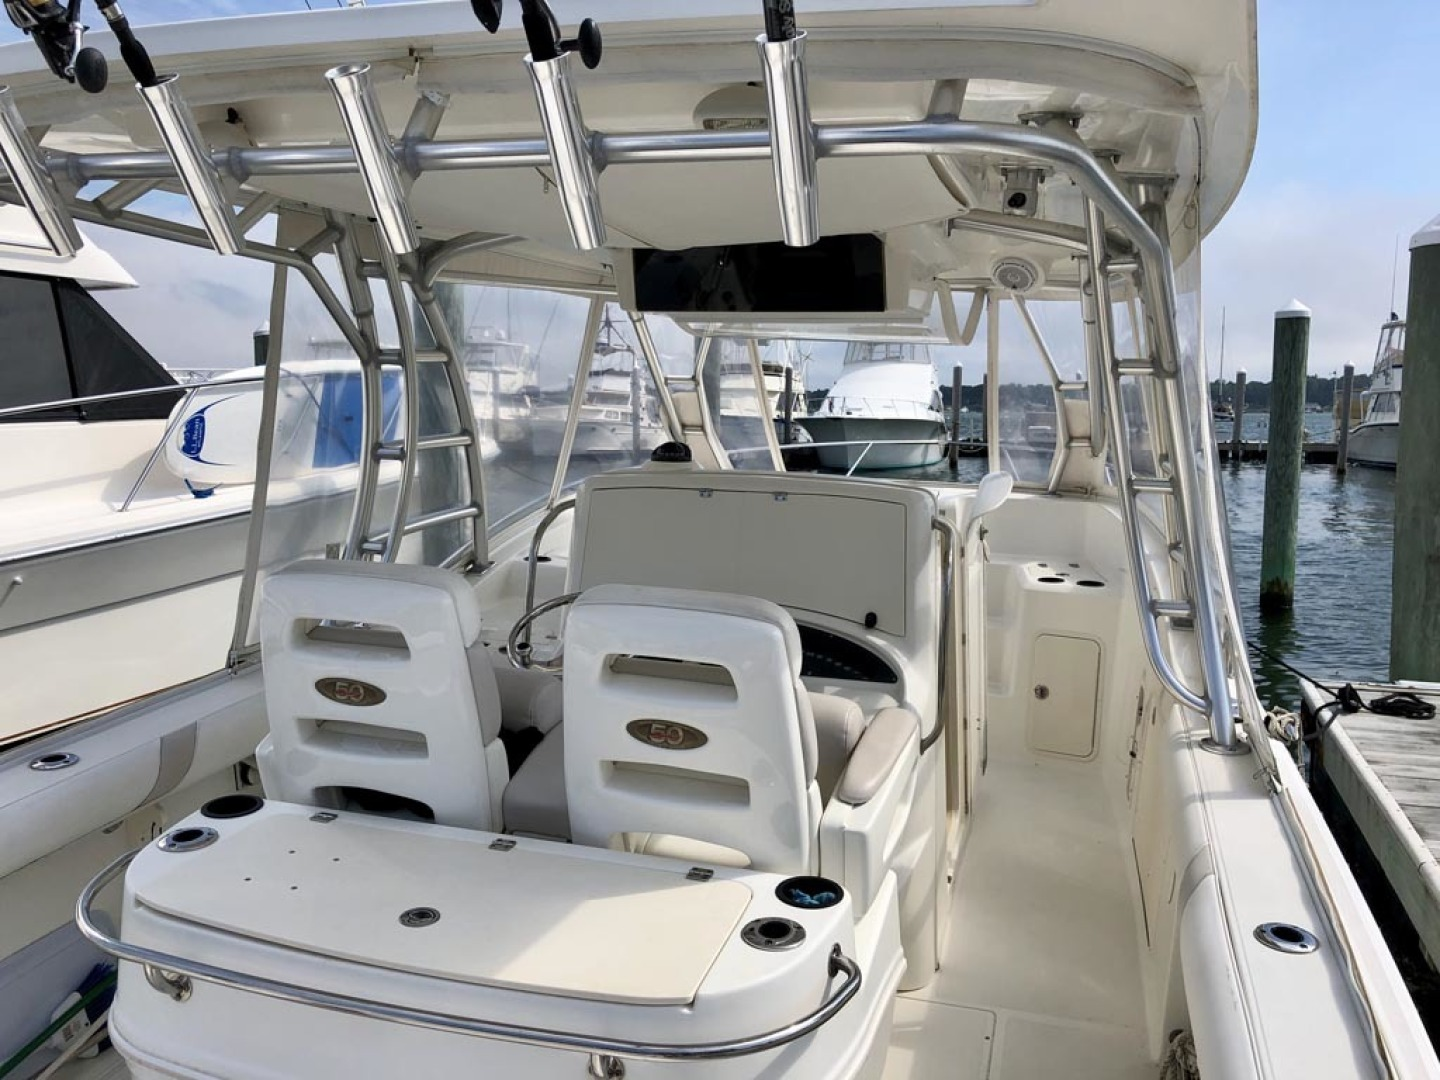 Boston Whaler-320 Outrage Cuddy Cabin 2008 -Onset-Massachusetts-United States-1447541 | Thumbnail